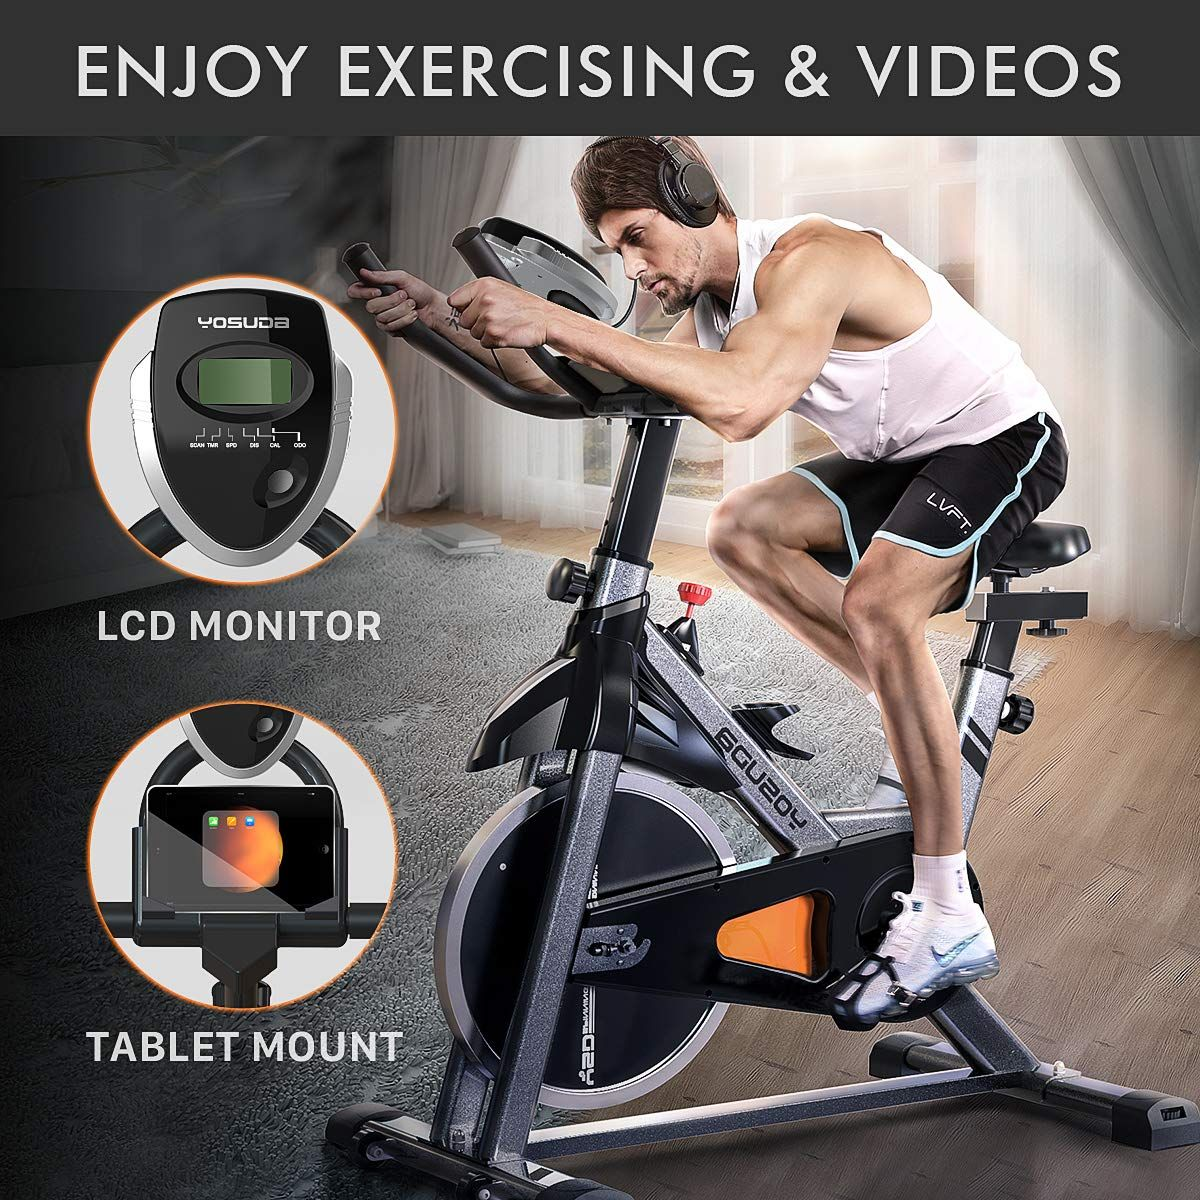 10 Amazing Health Benefits Of The Stationary Bike The Best Way To